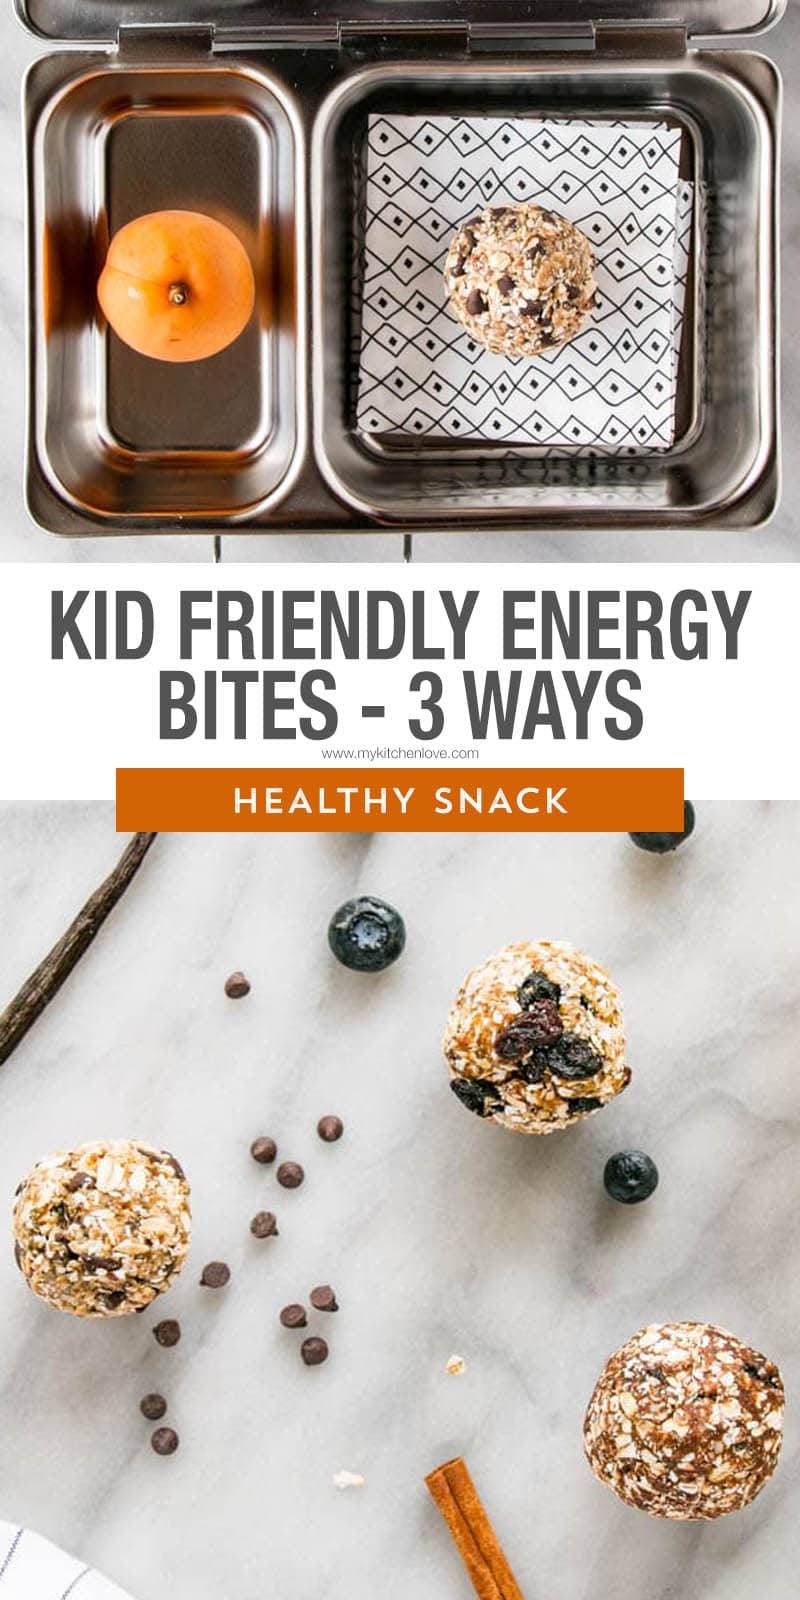 5 new and fresh ideas for nut-free and healthy options for kids! Kid-Friendly Oat Bites are perfect for Back-to-School and are freezer friendly meaning they can go the distance. These healthy snacks for kids aren't to be missed! via @mykitchenlove